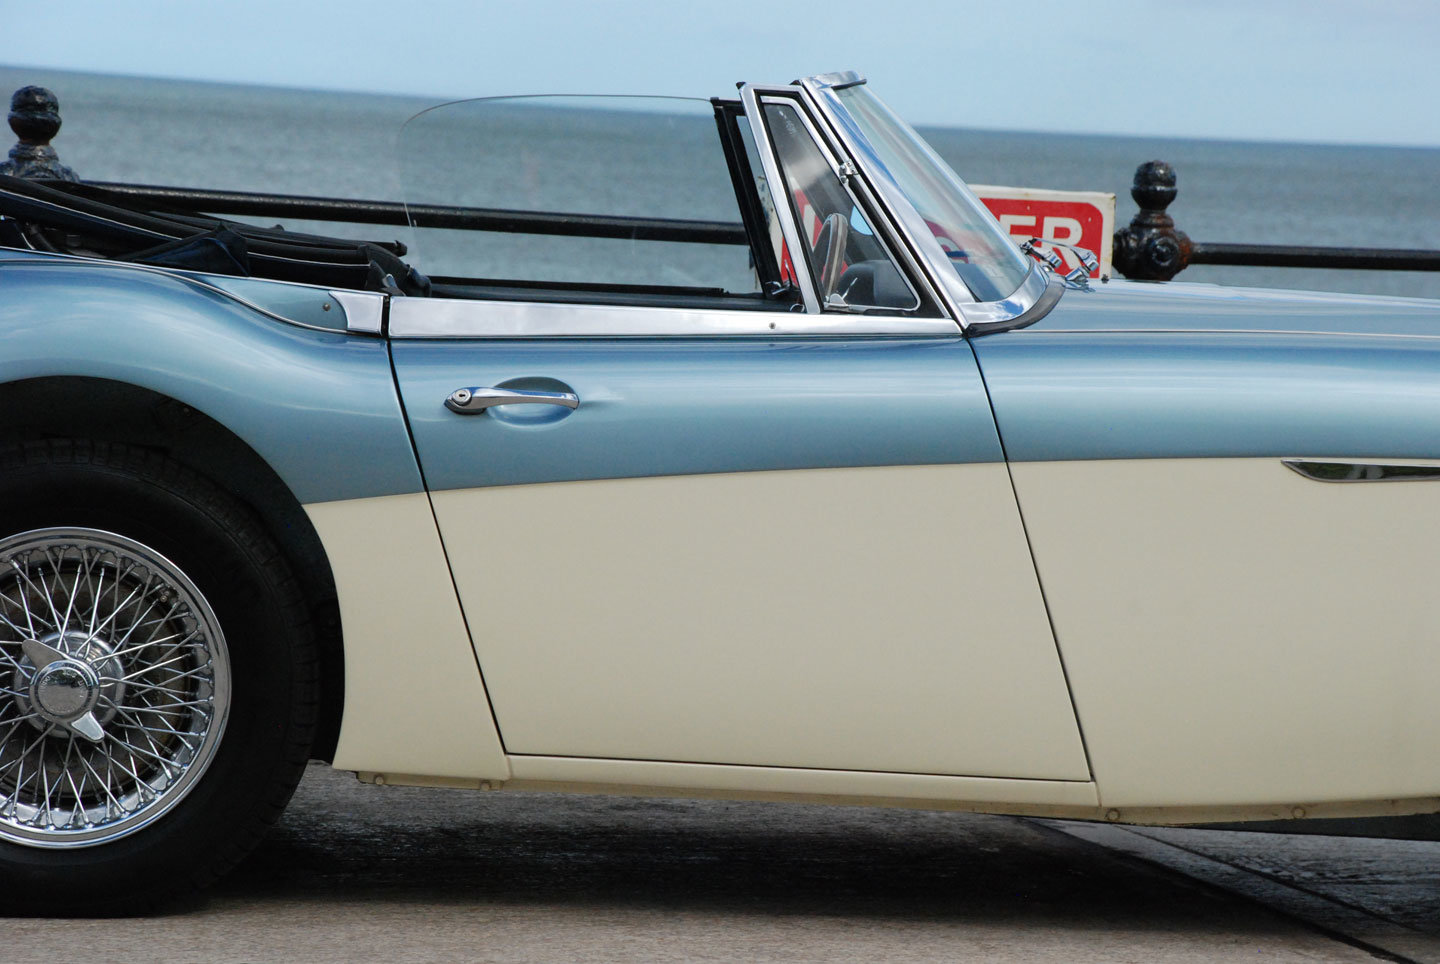 1966 Austin Healey 3000 MK 3 BJ8 phase 2 For Sale (picture 3 of 10)